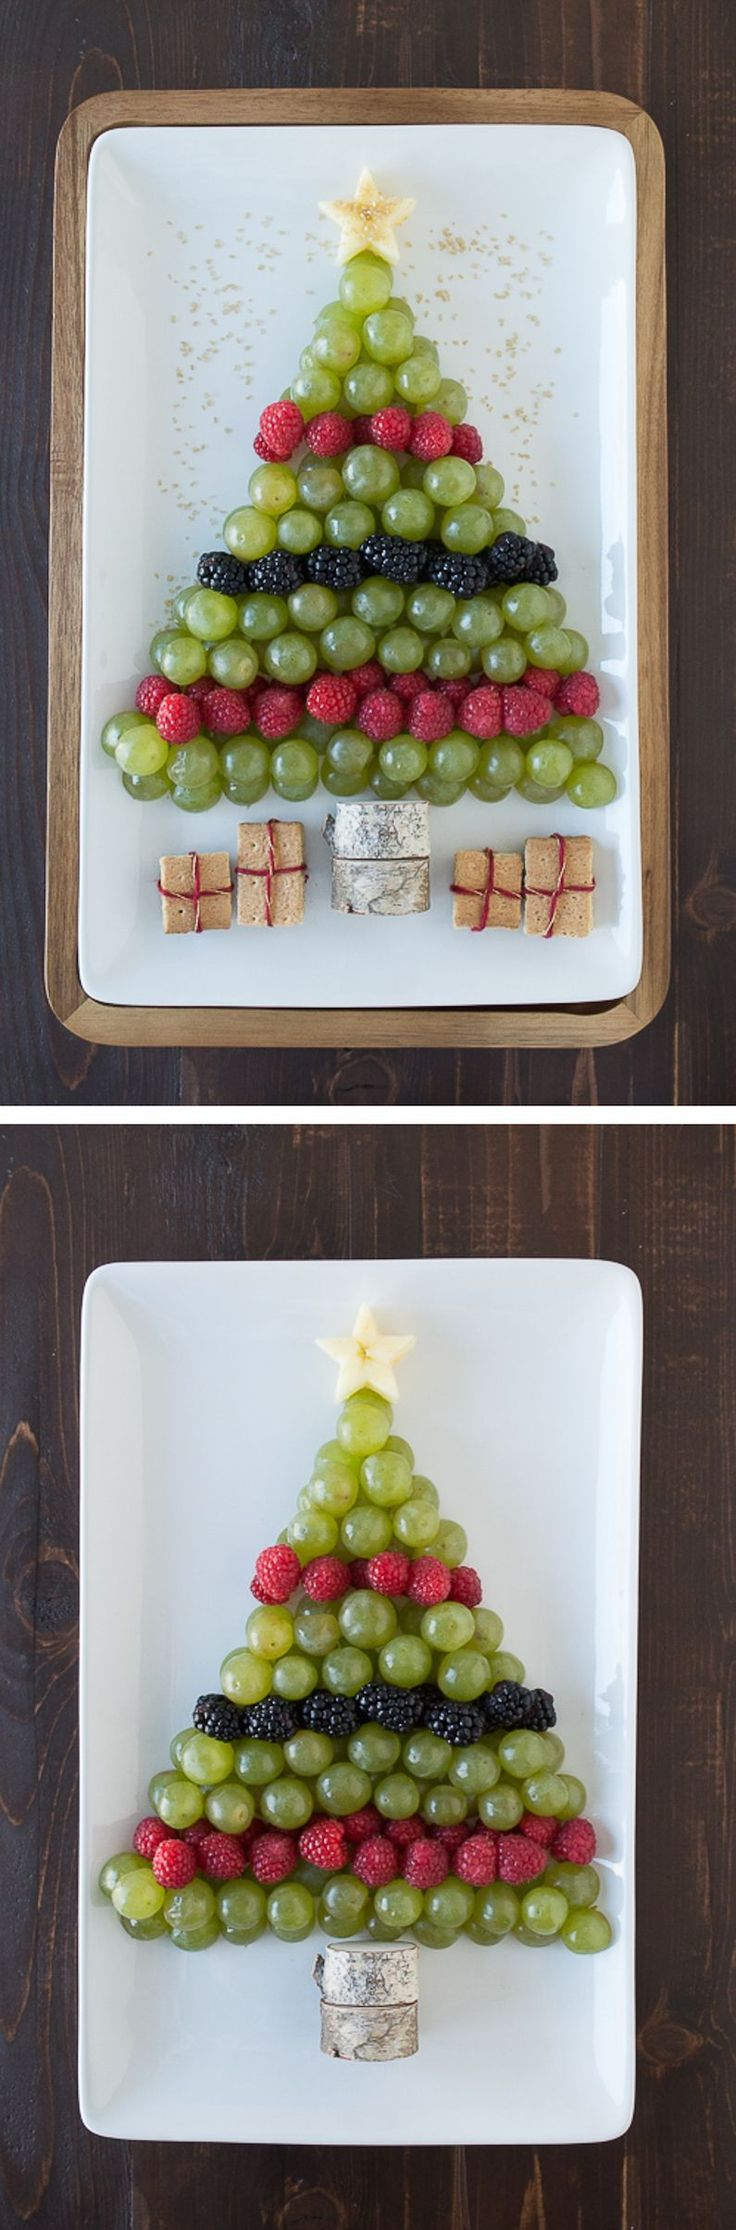 Create a healthy fruit platter for Christmas in the shape of a christmas tree using an apple, grapes, raspberries, blackberries, and graham crackers